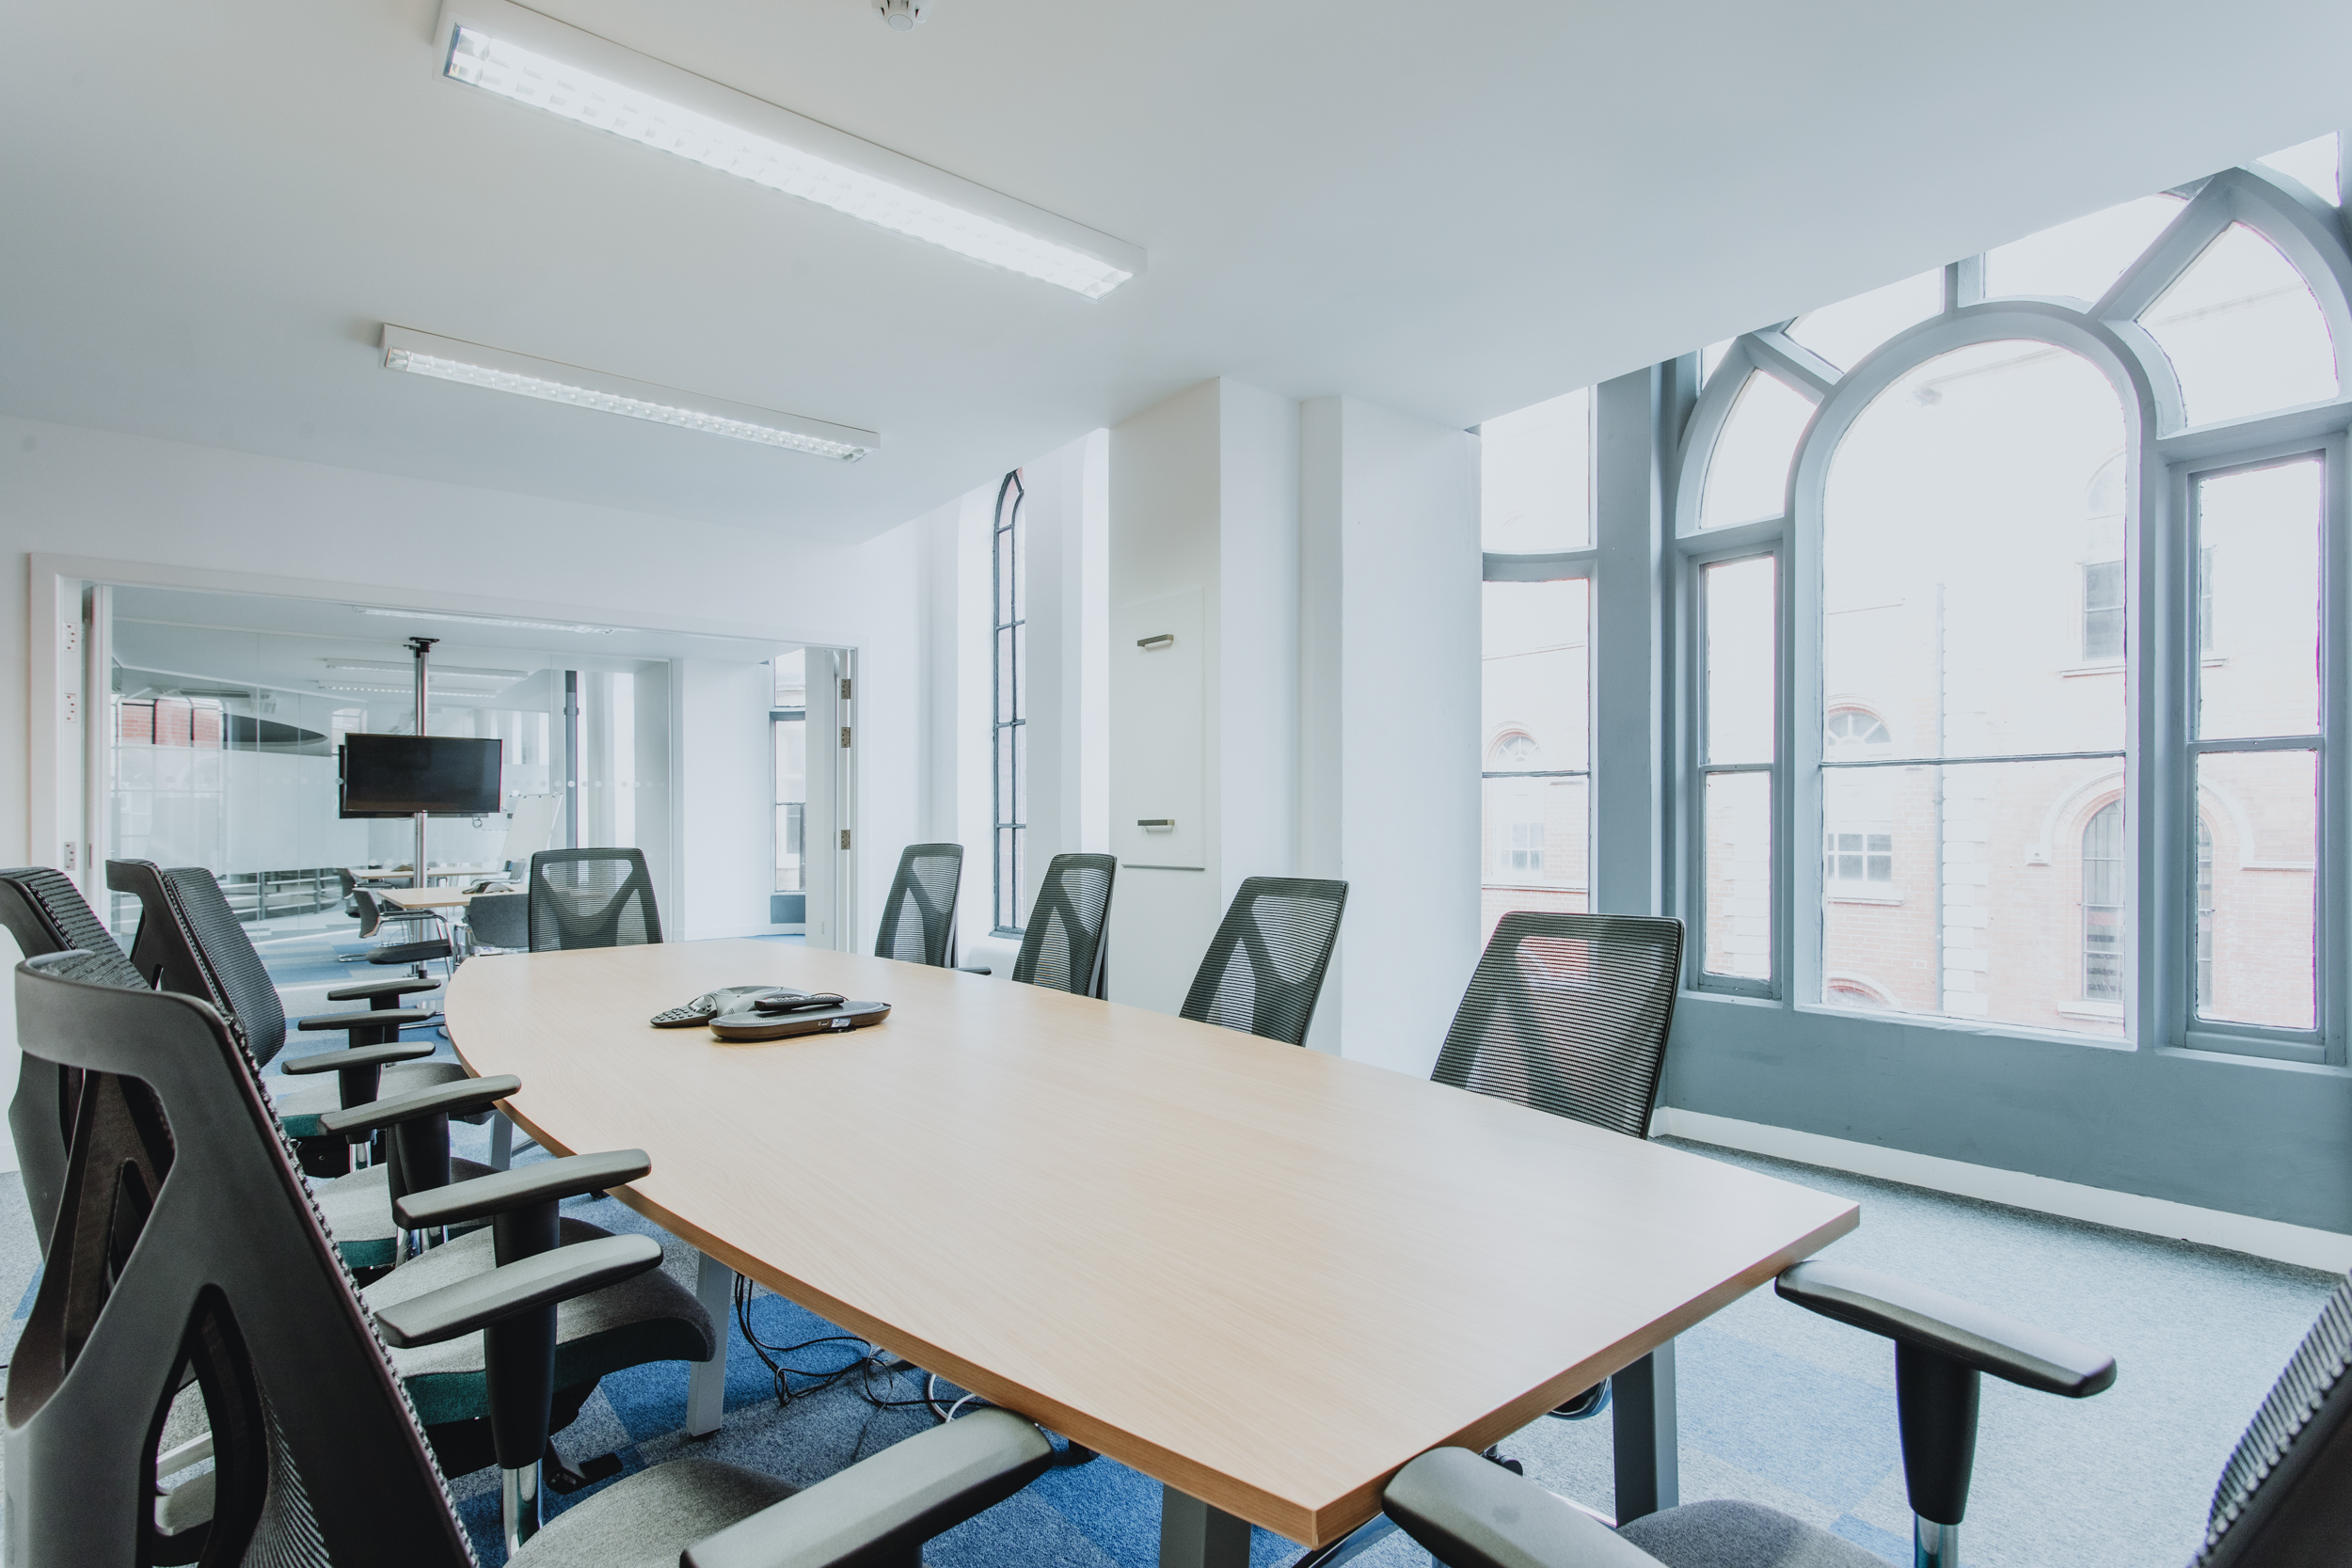 Board room and collaboration desk against big window Spenbeck creative space offices to rent Nottingham